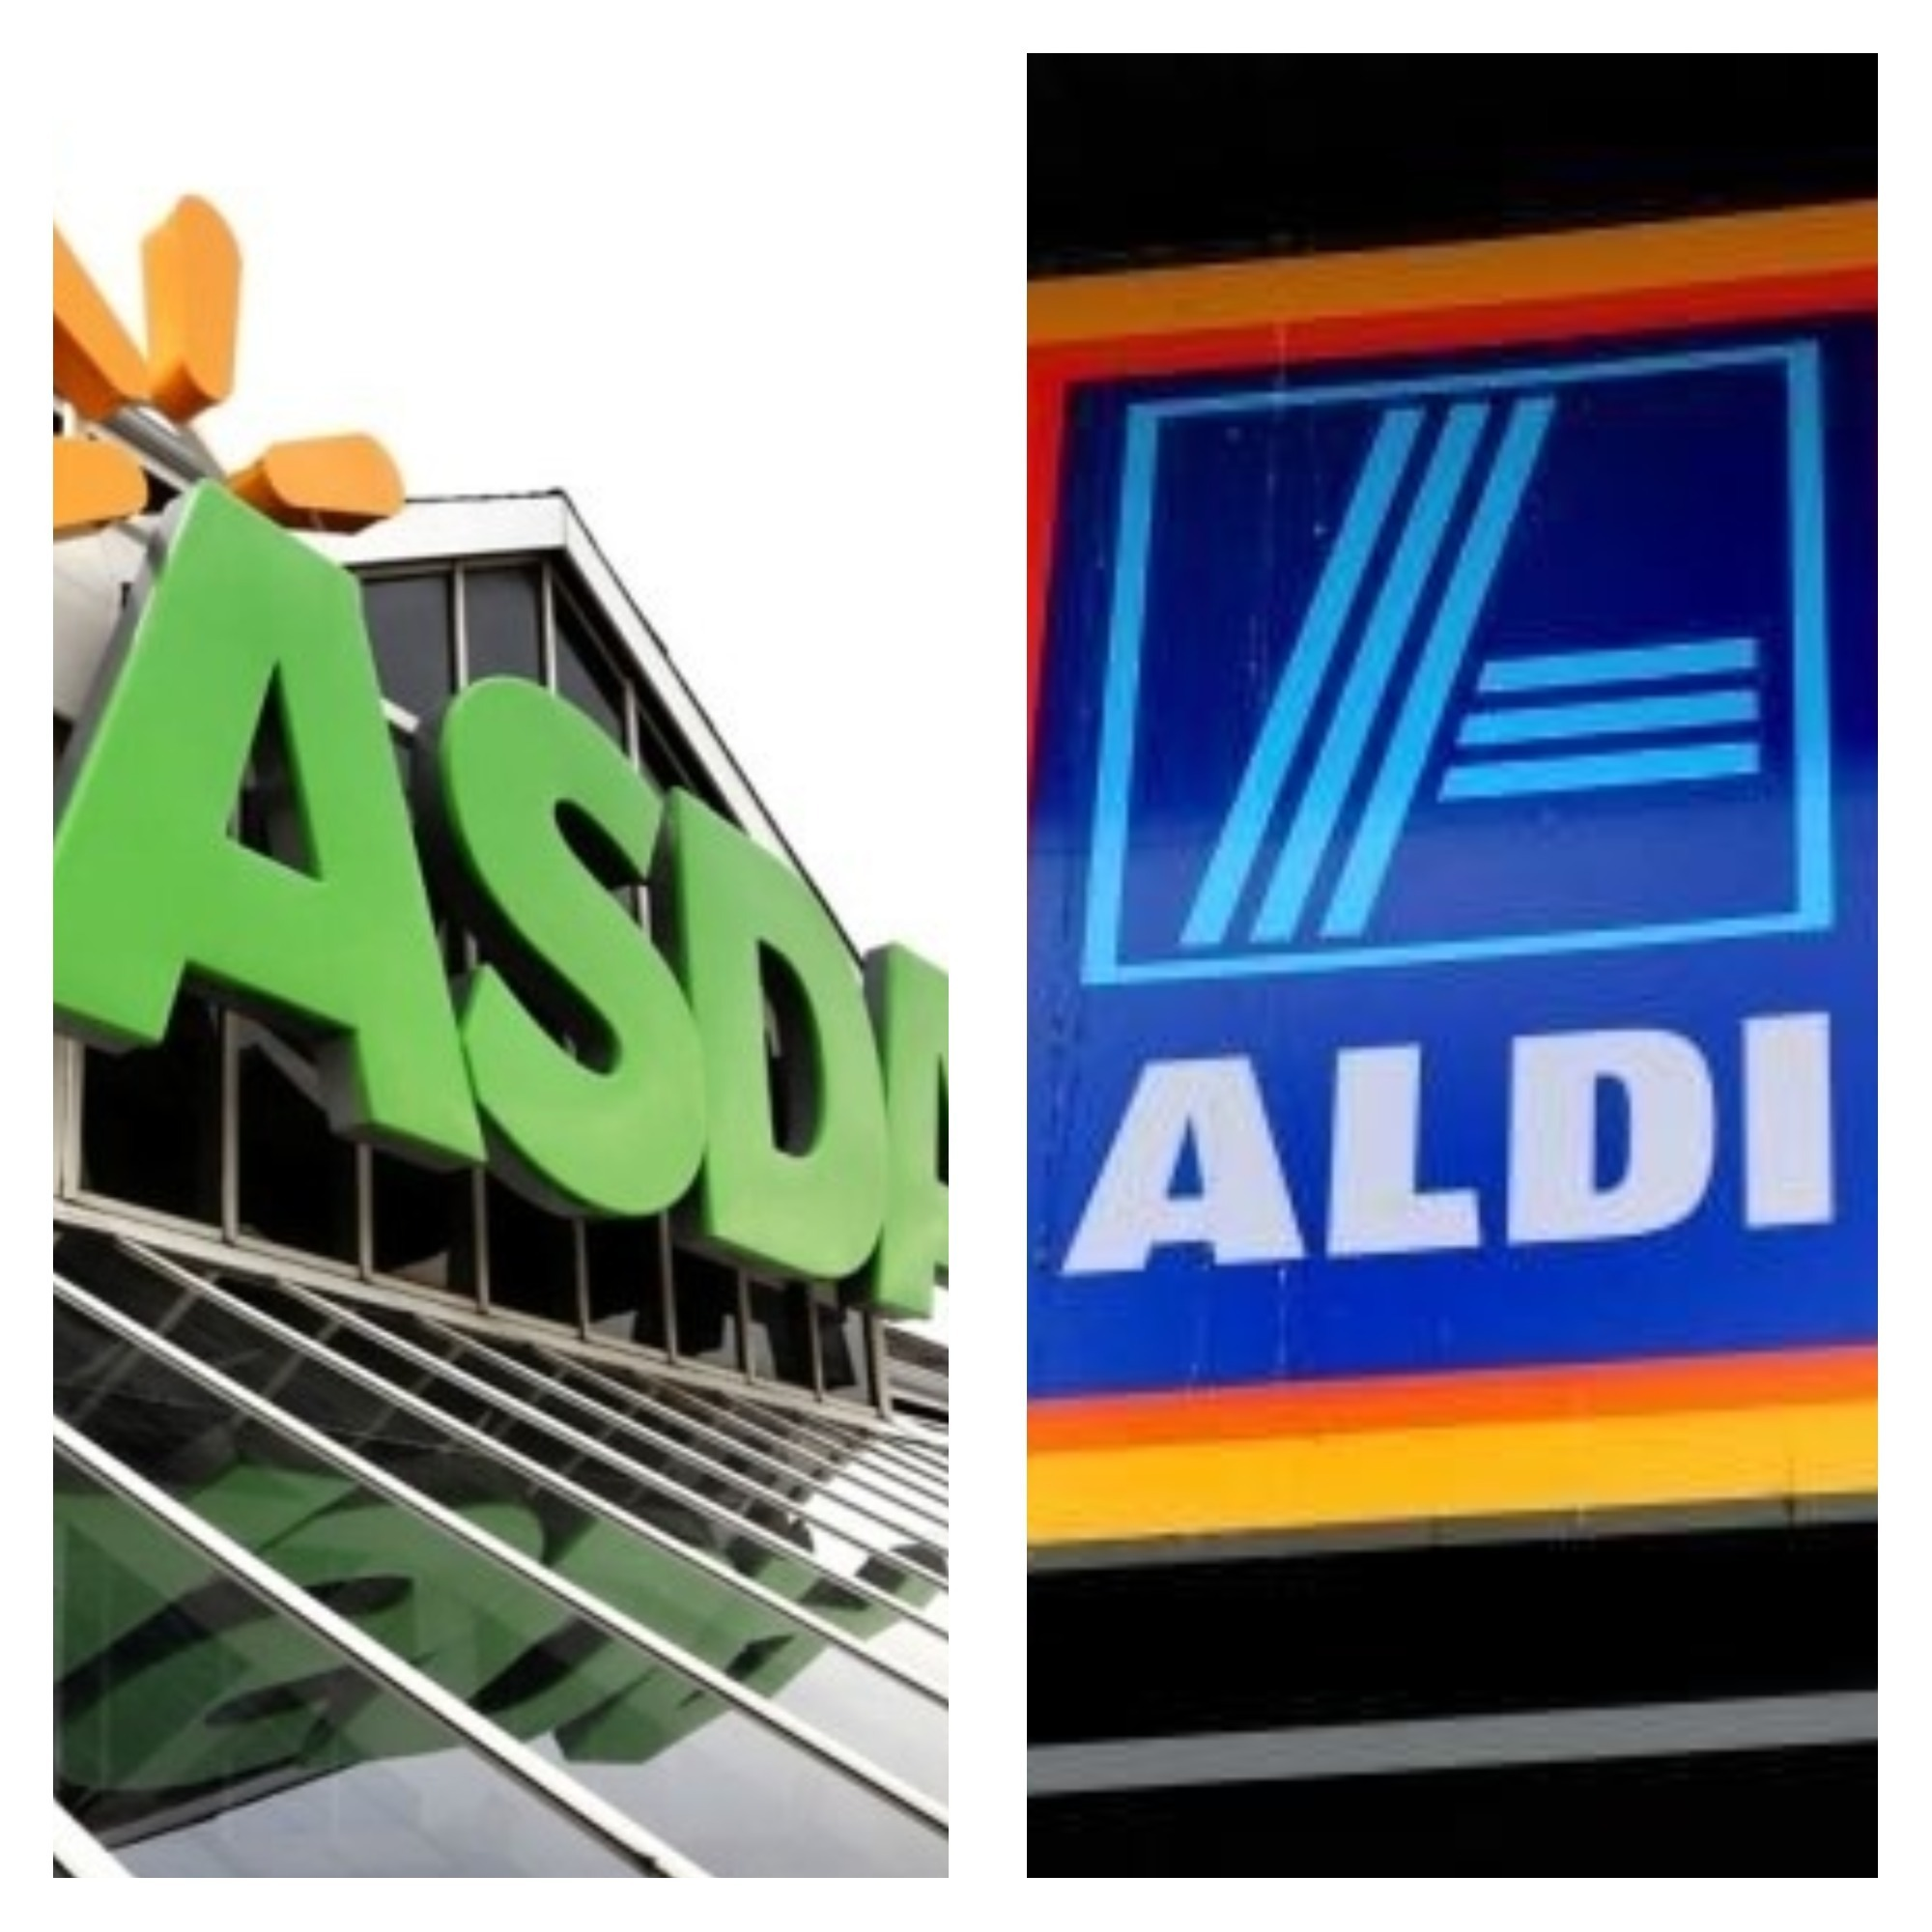 Asda and Aldi